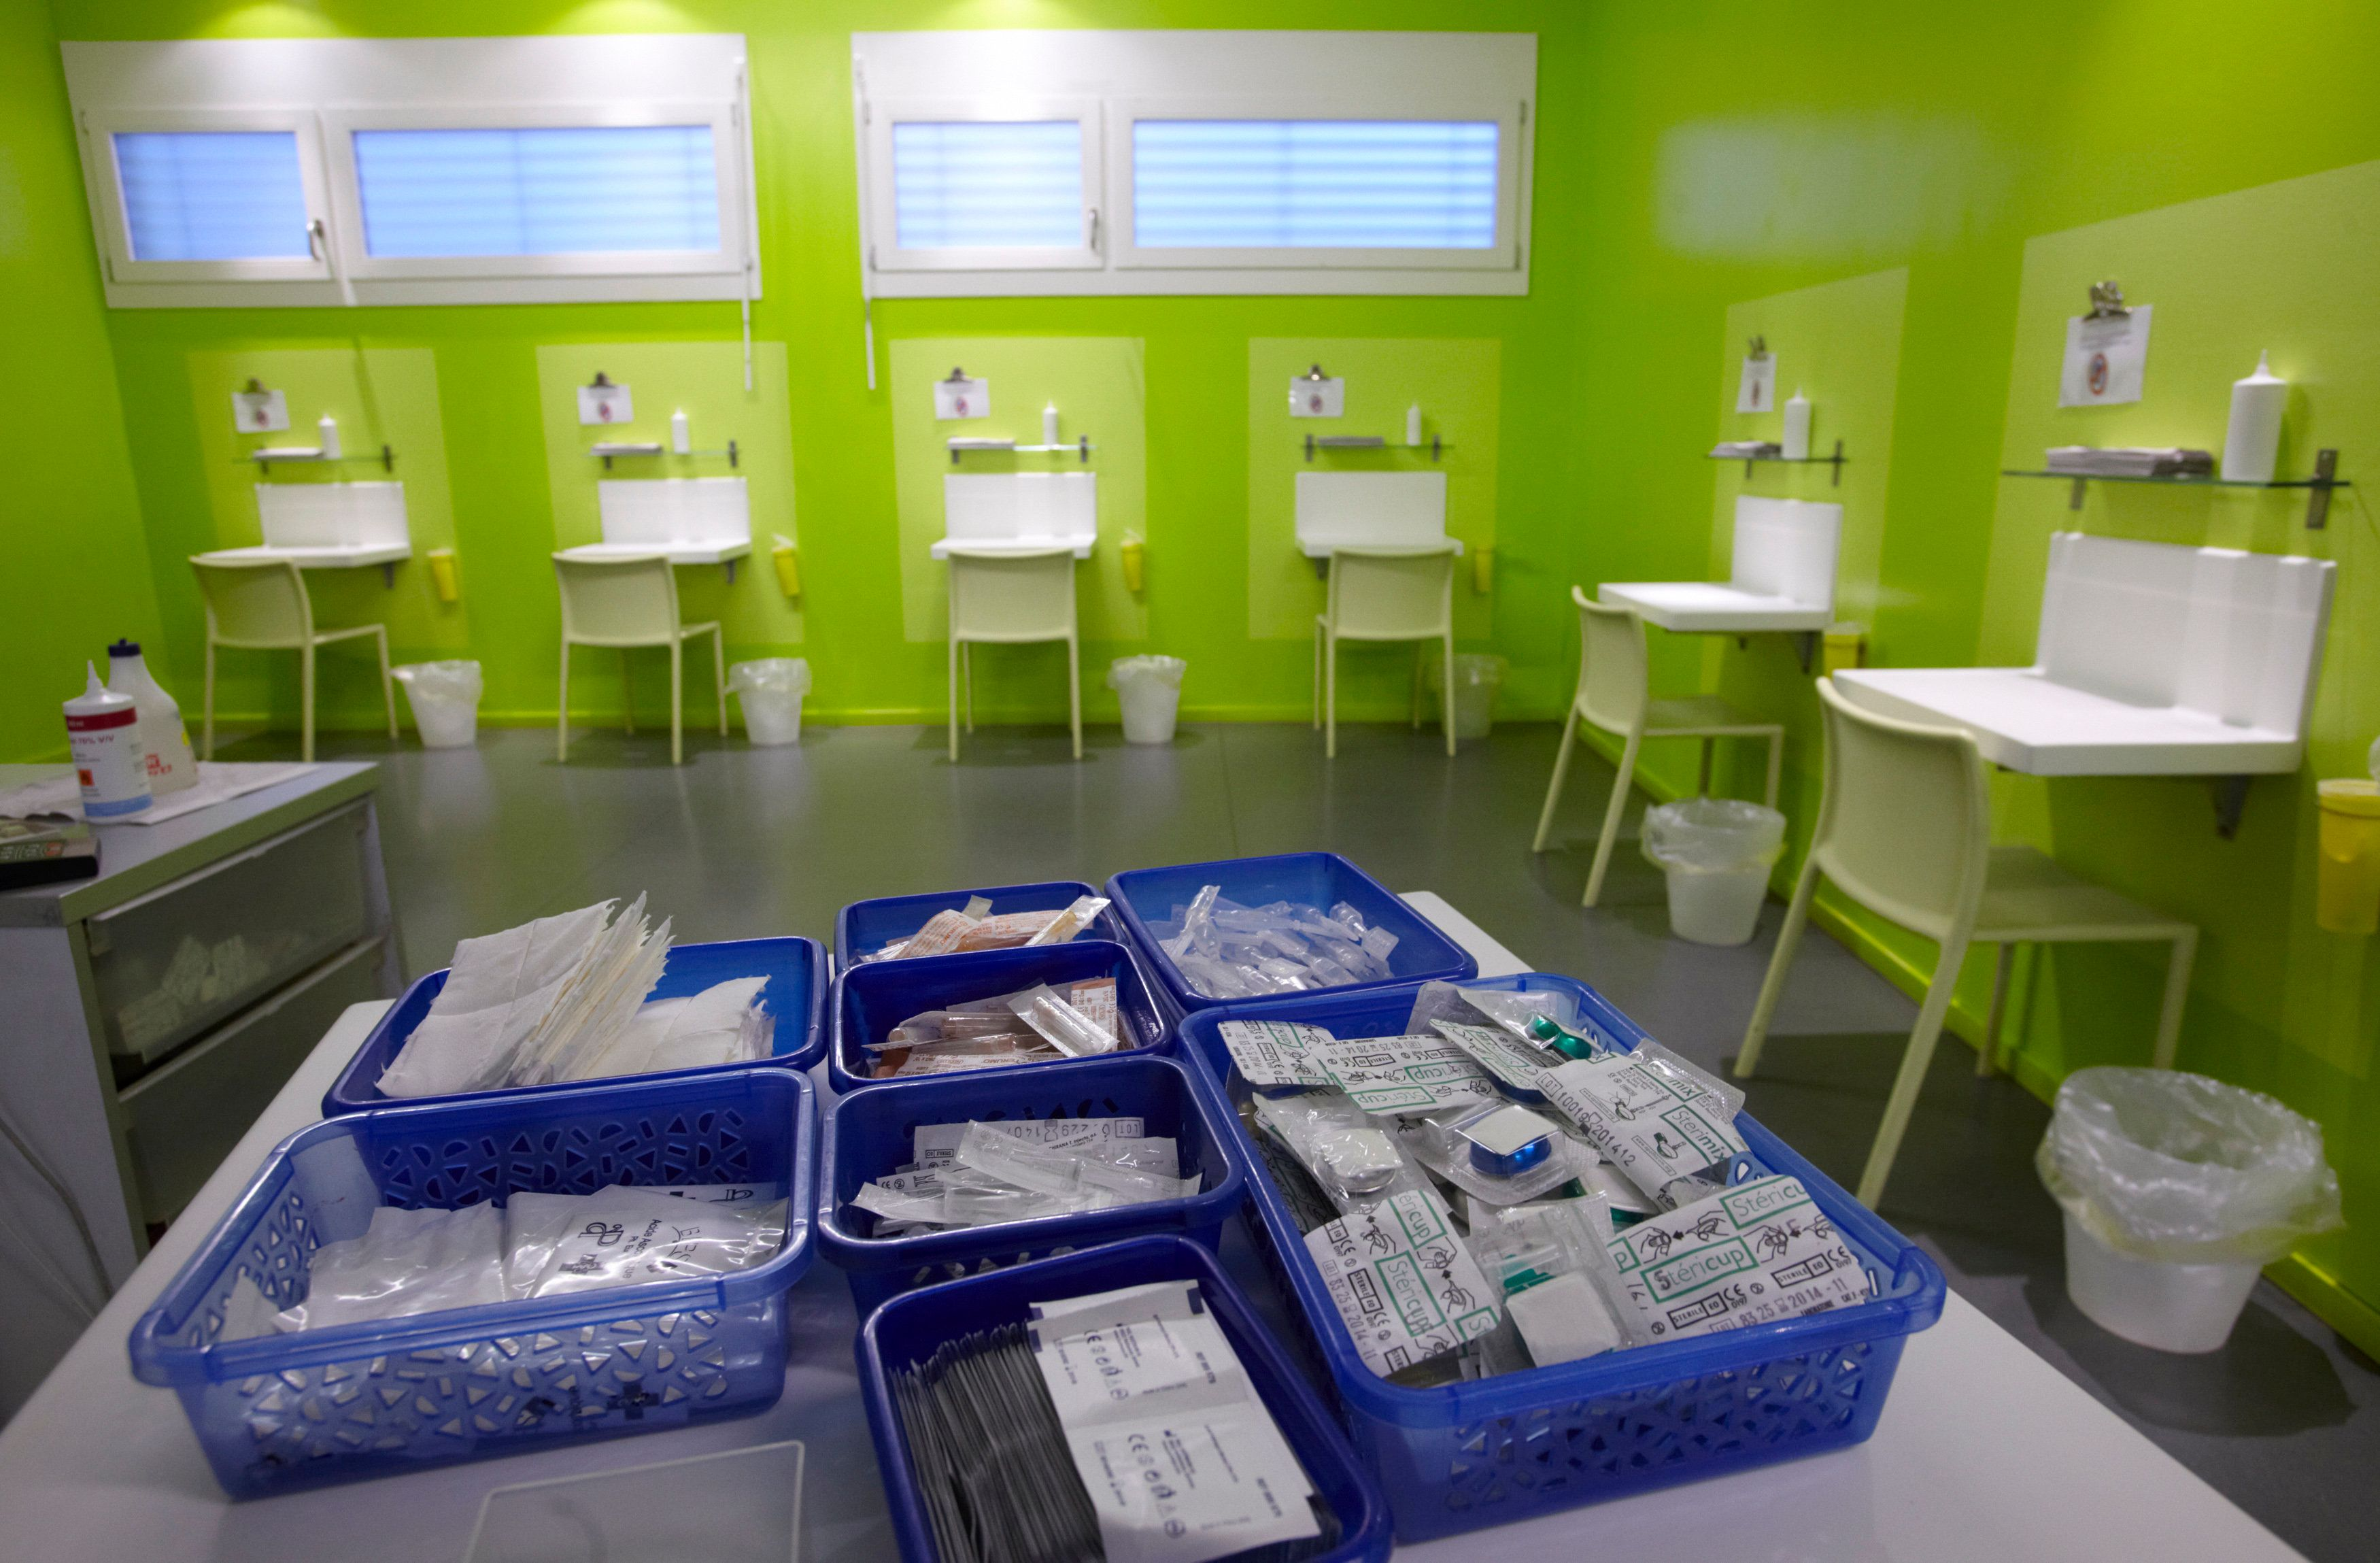 Kits of supplies containing syringes, bandages and antiseptic pads inside a safe injection site in Switzerland.